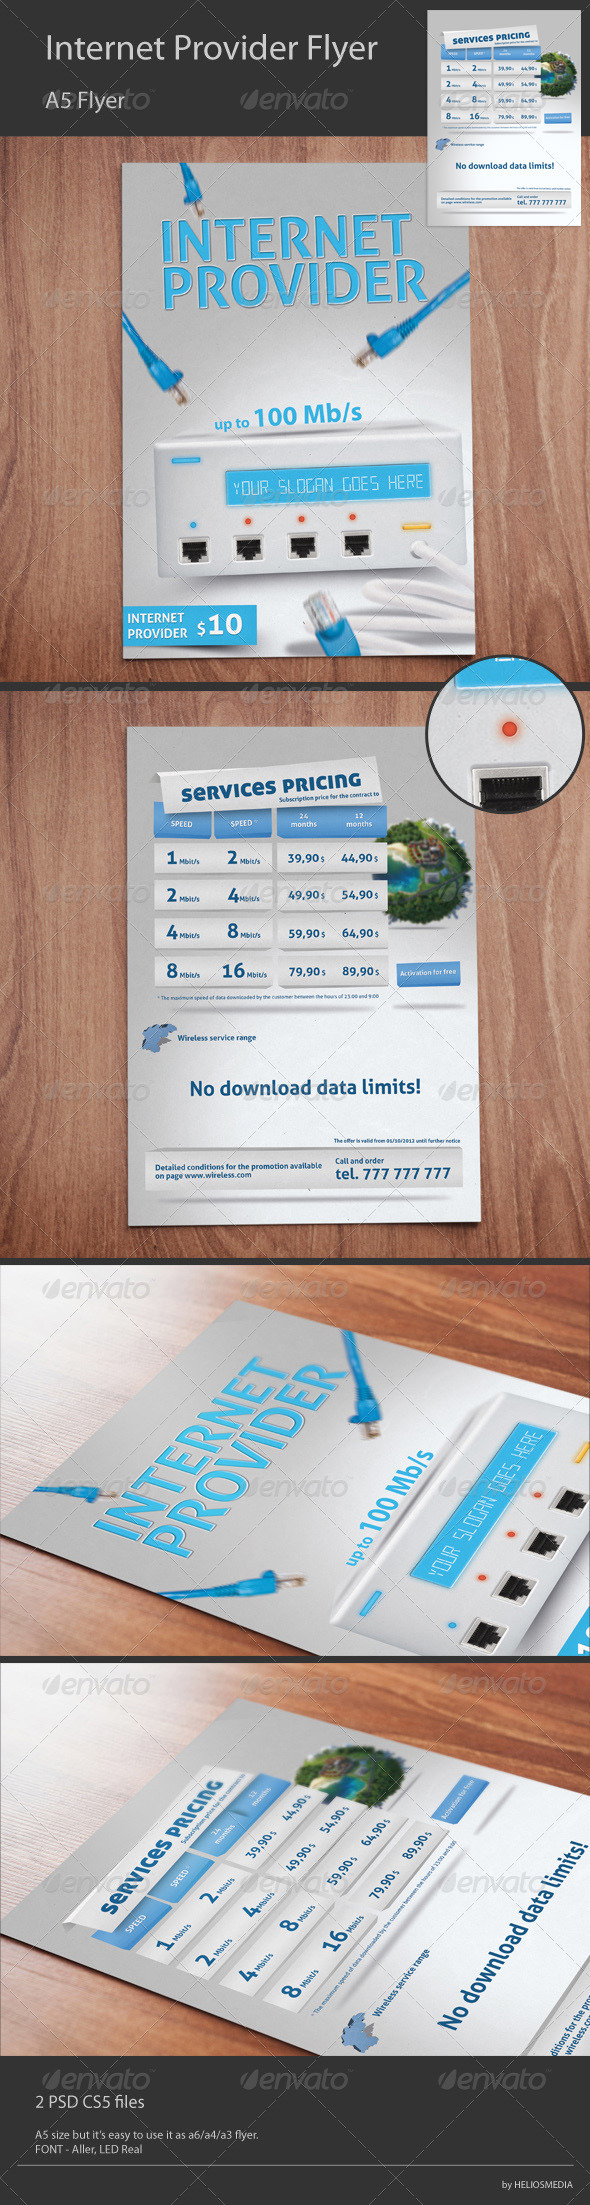 Wireless Internet Provider Flyer - Corporate Flyers